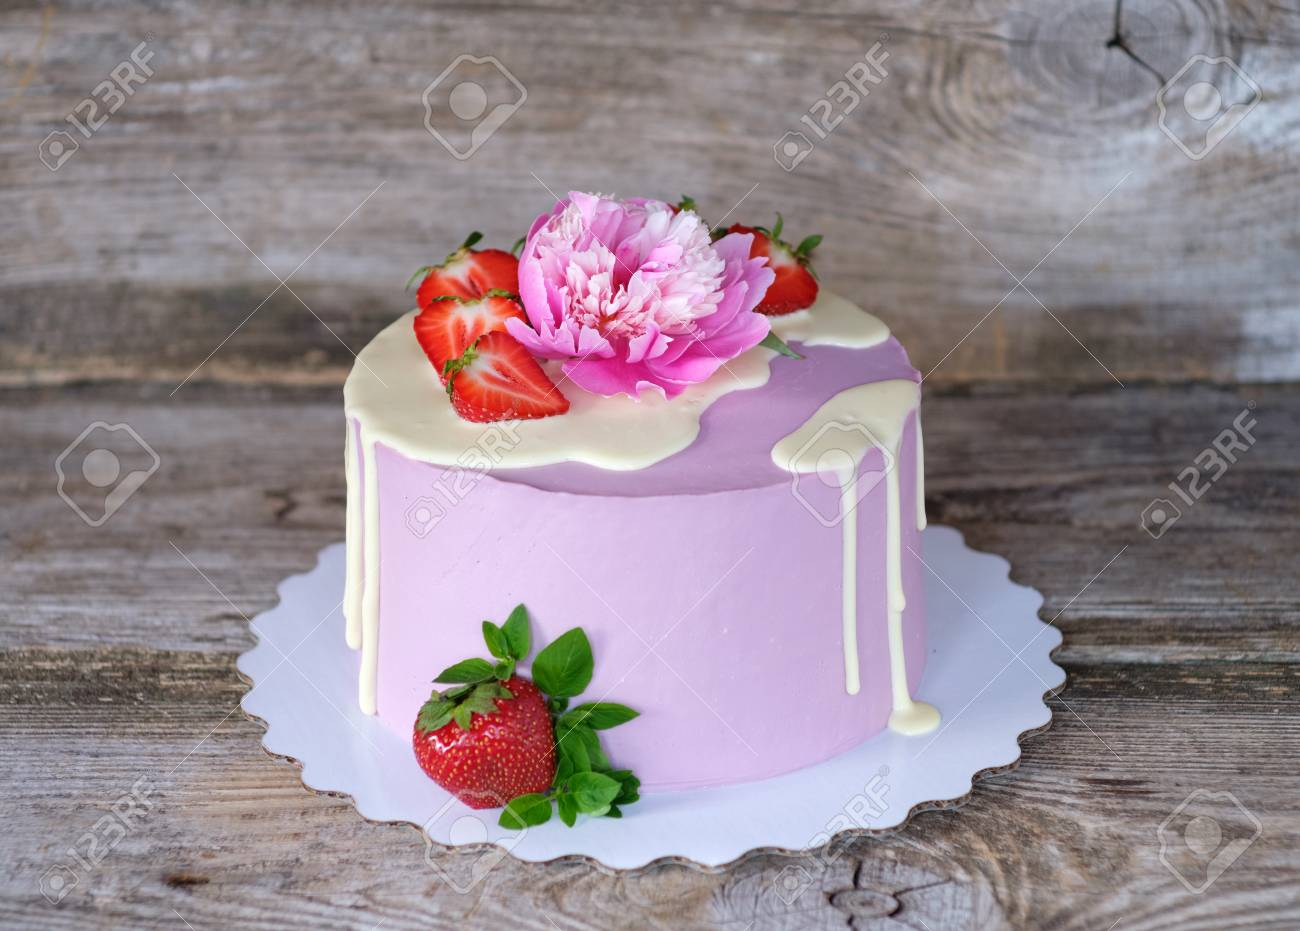 Beautiful Homemade Cake With Purple Cheese Cream Decorated Live Pink Peony And Strawberry Berries